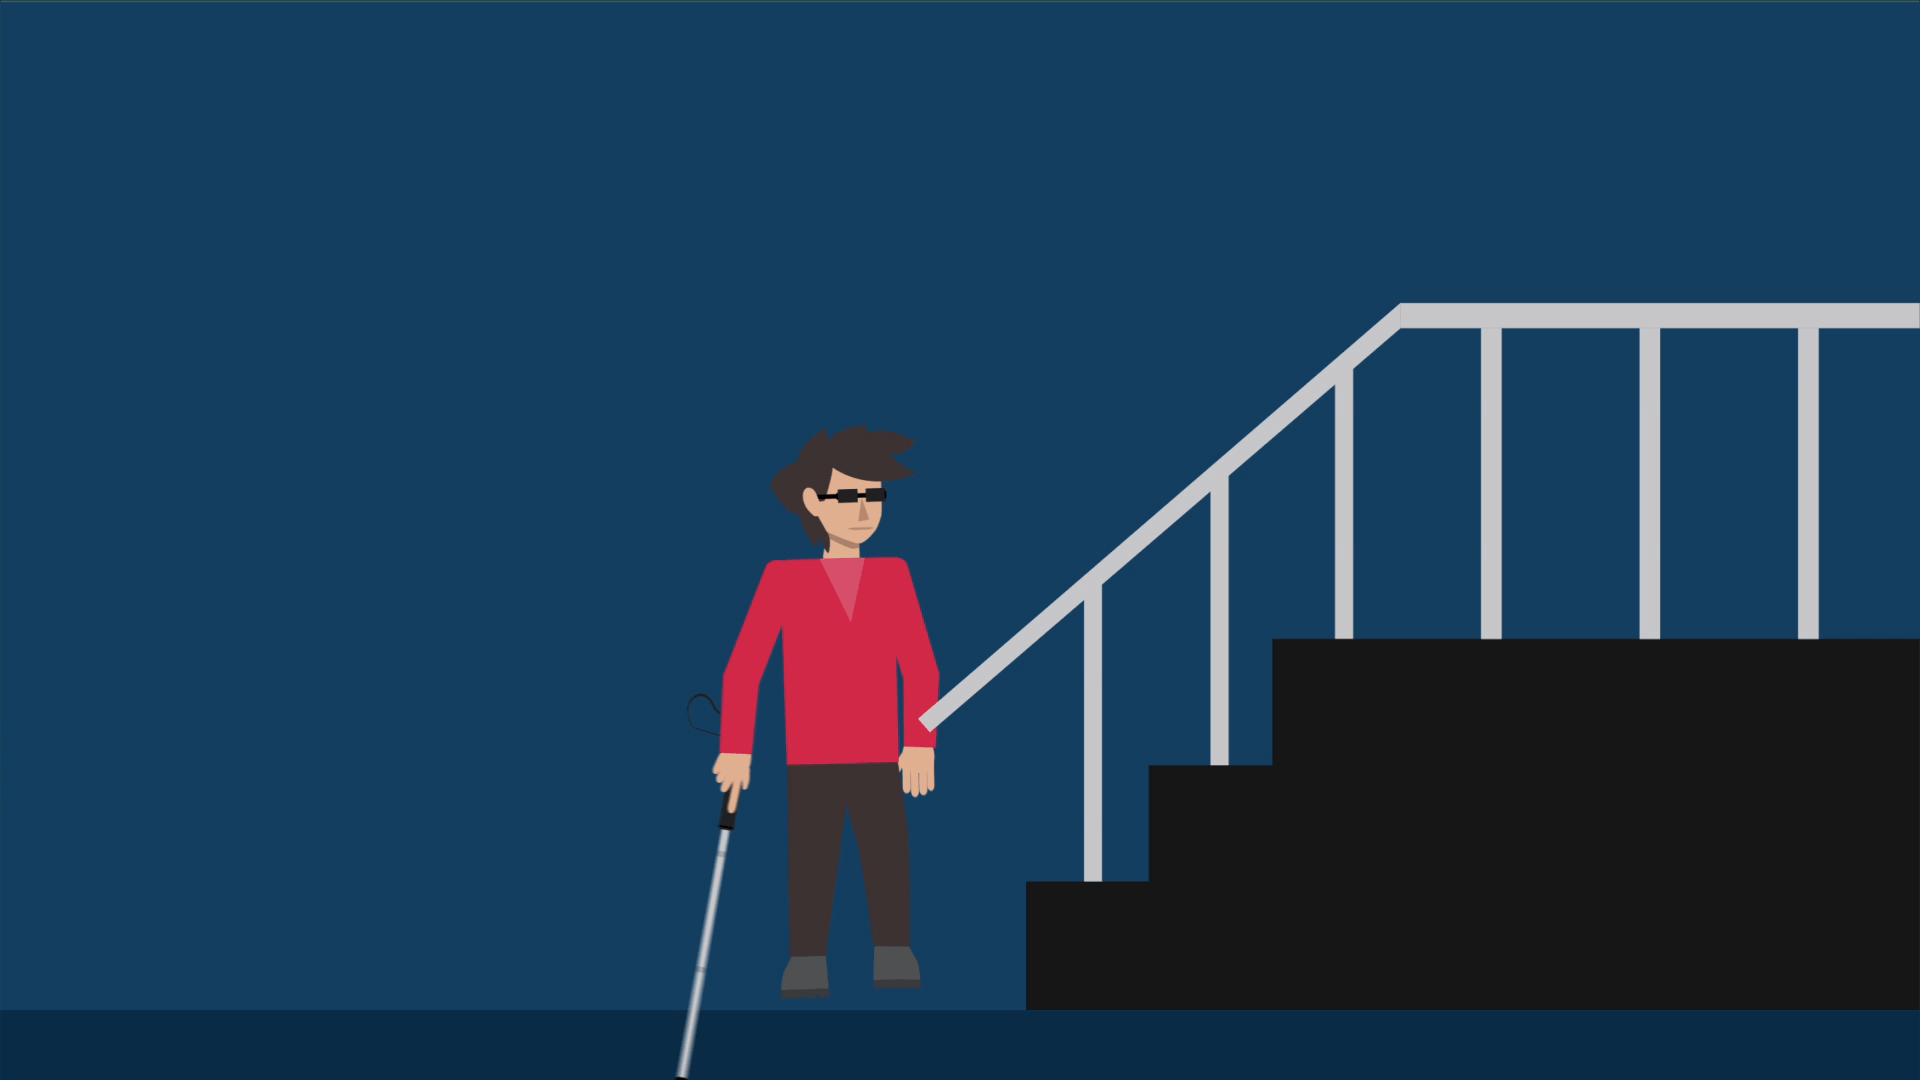 BAWA Cane detects even the smallest of obstacles like handrails of stairs.